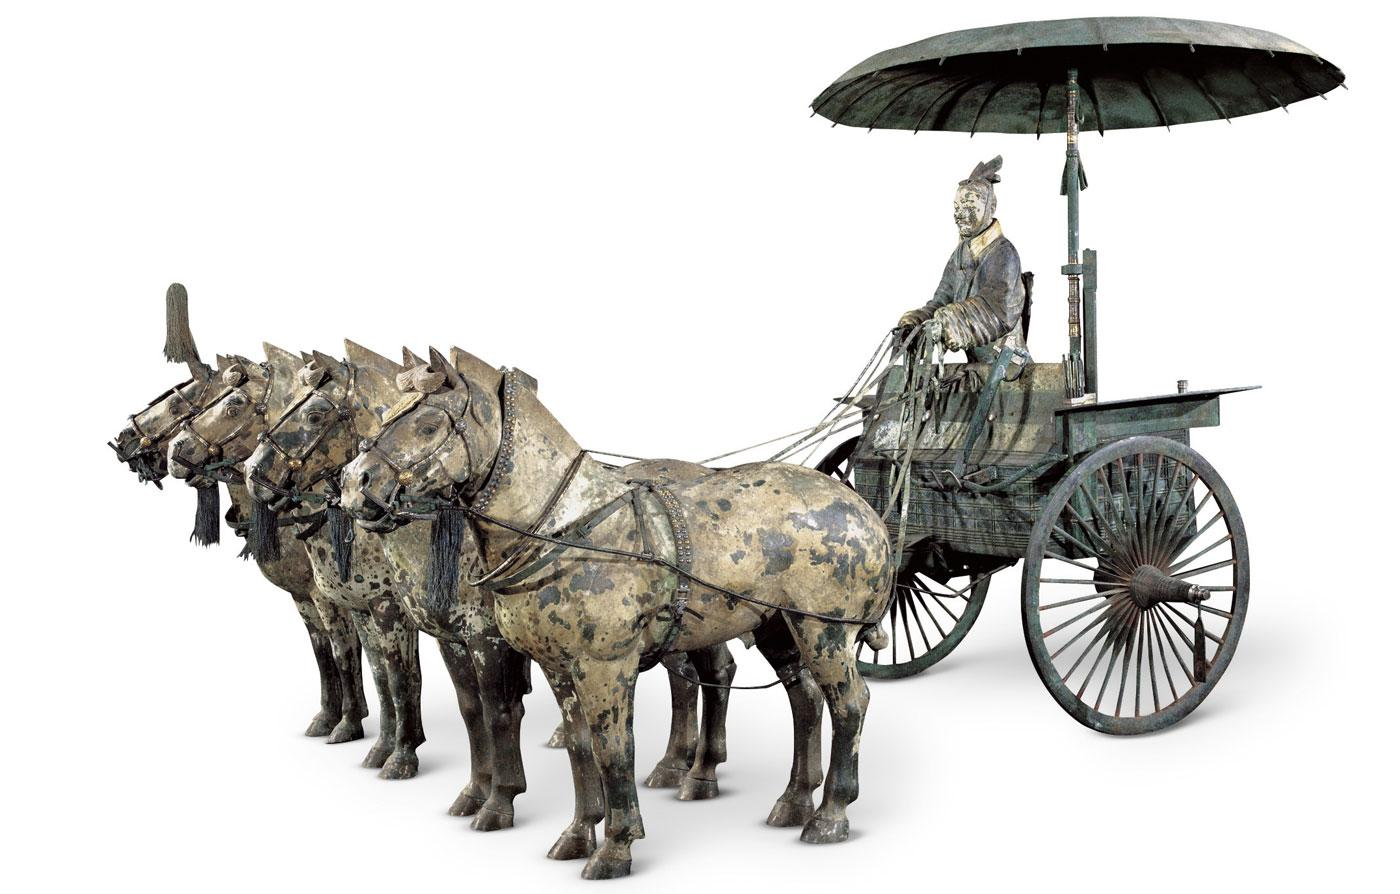 Chariot No. 1 with Horses